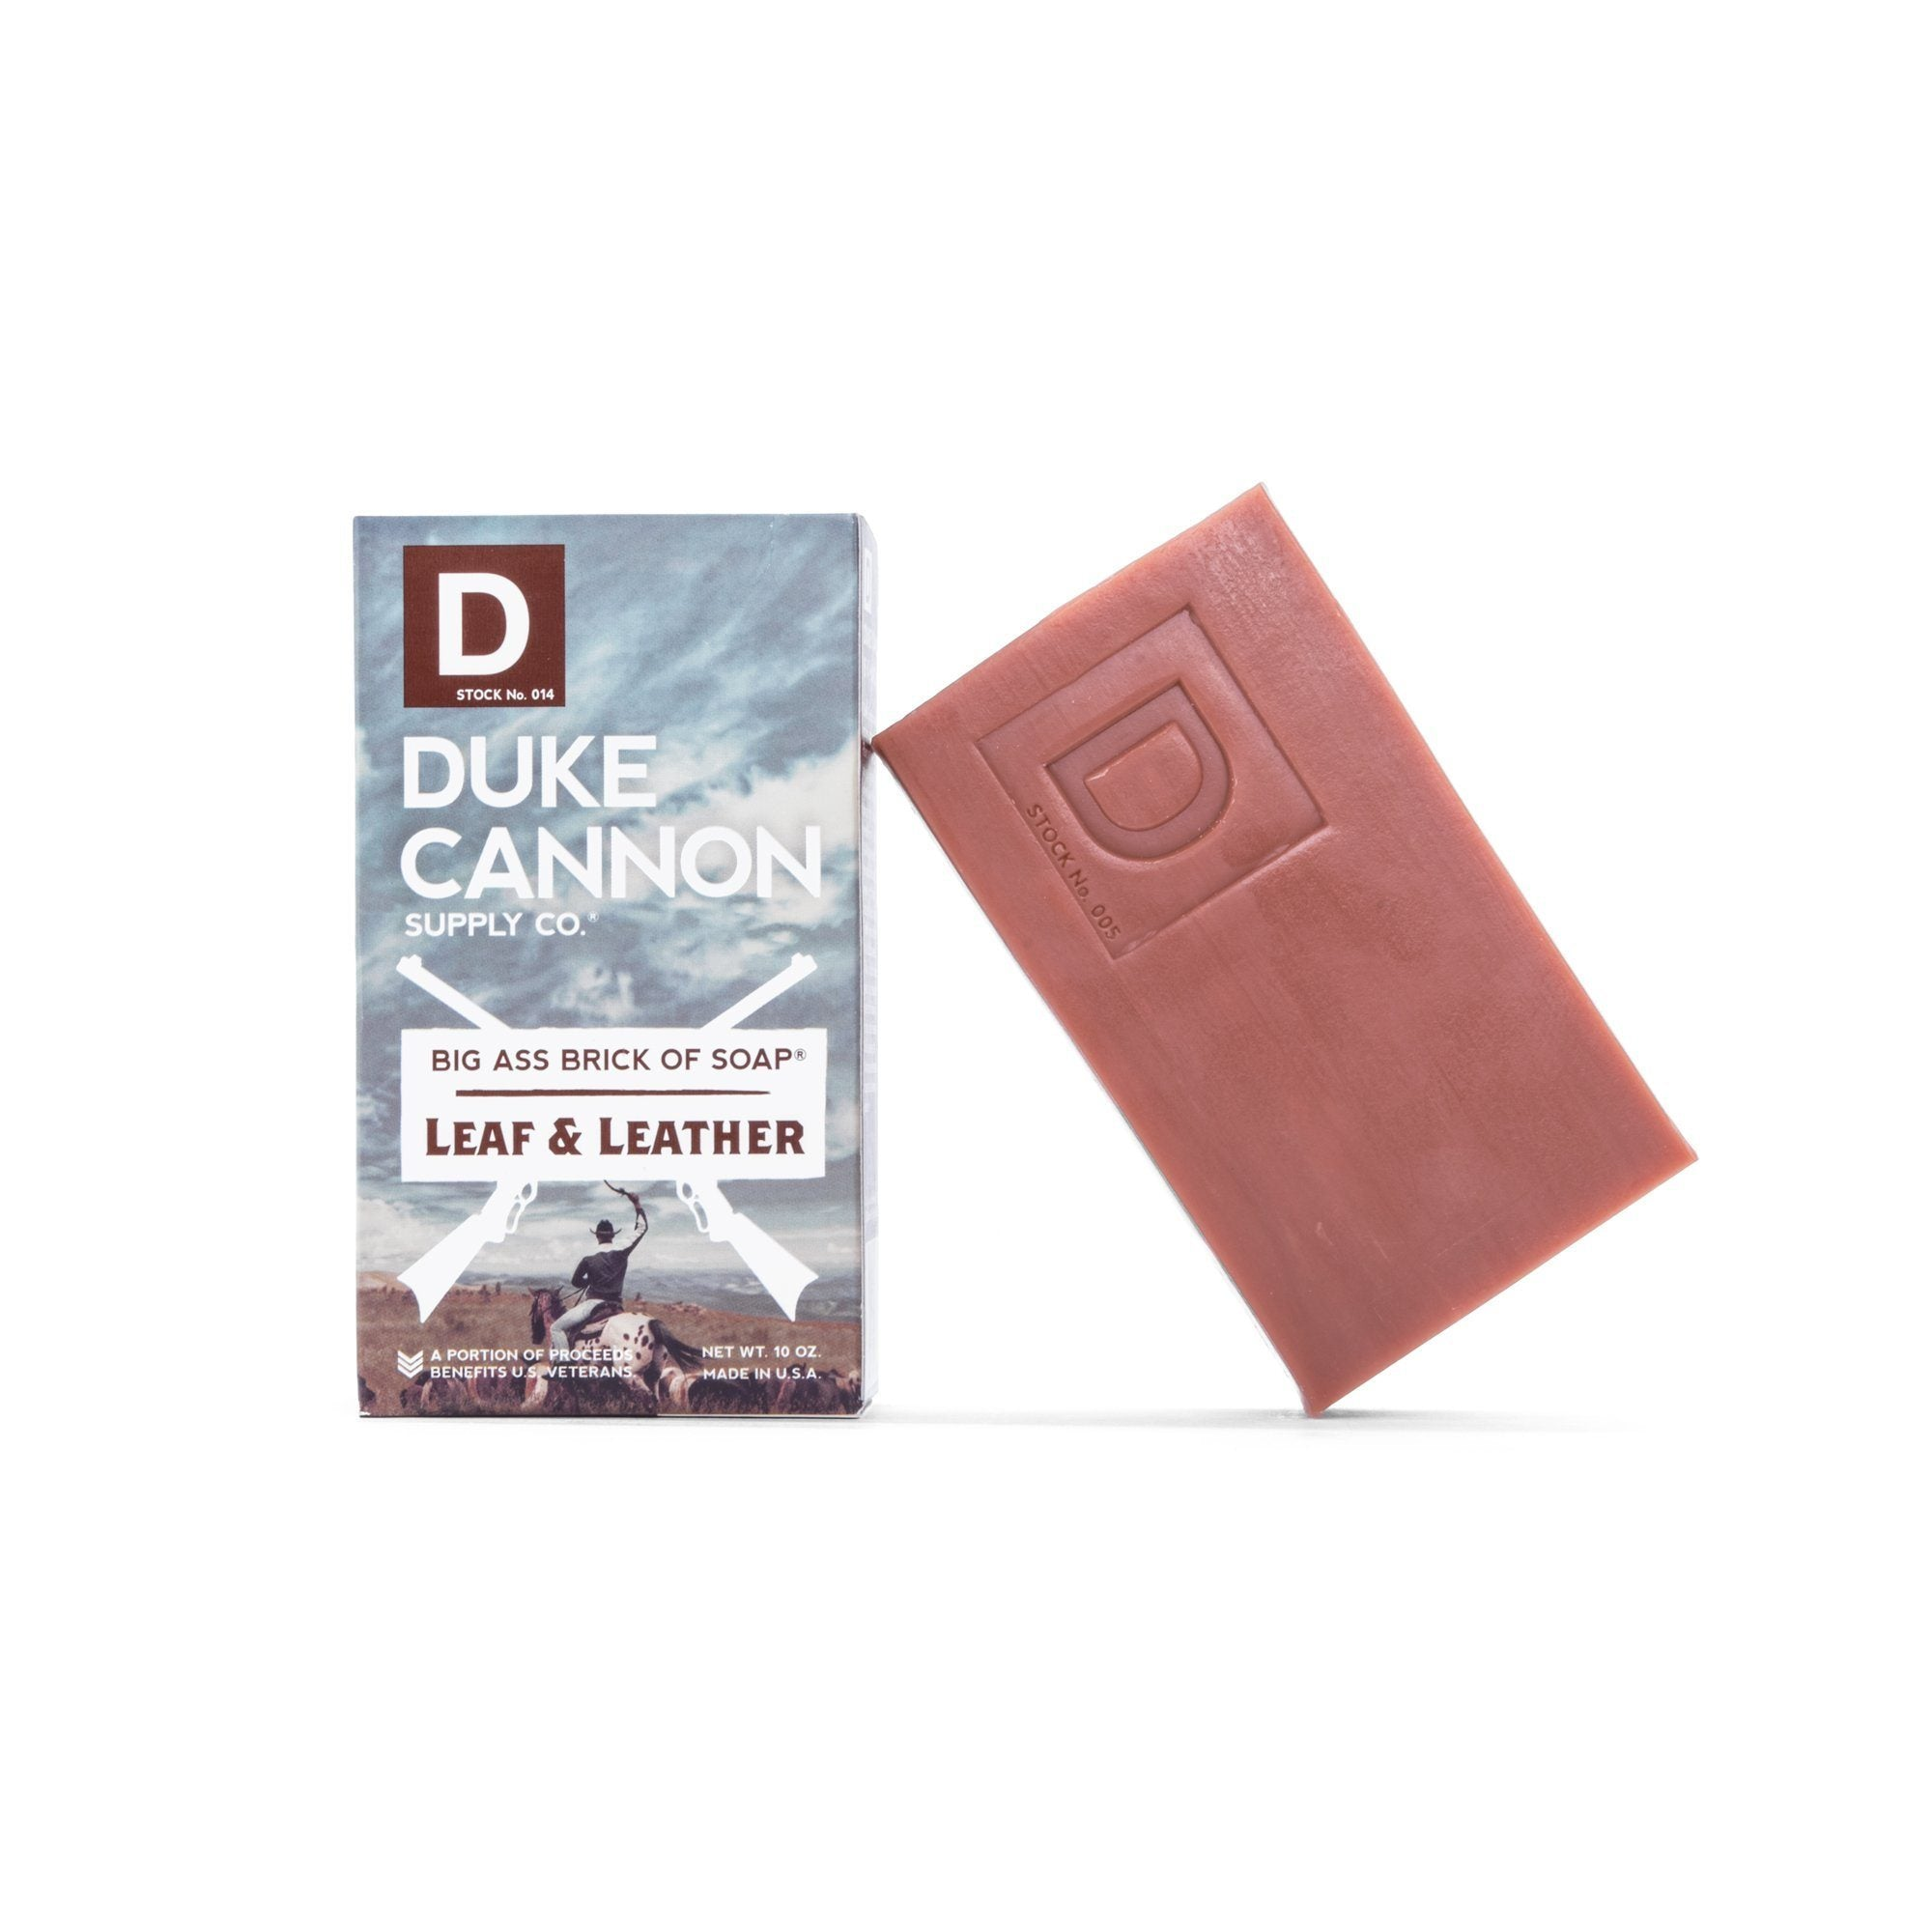 Duke Cannon Supply Co. Big Ass Brick of Soap, Leaf & Leather